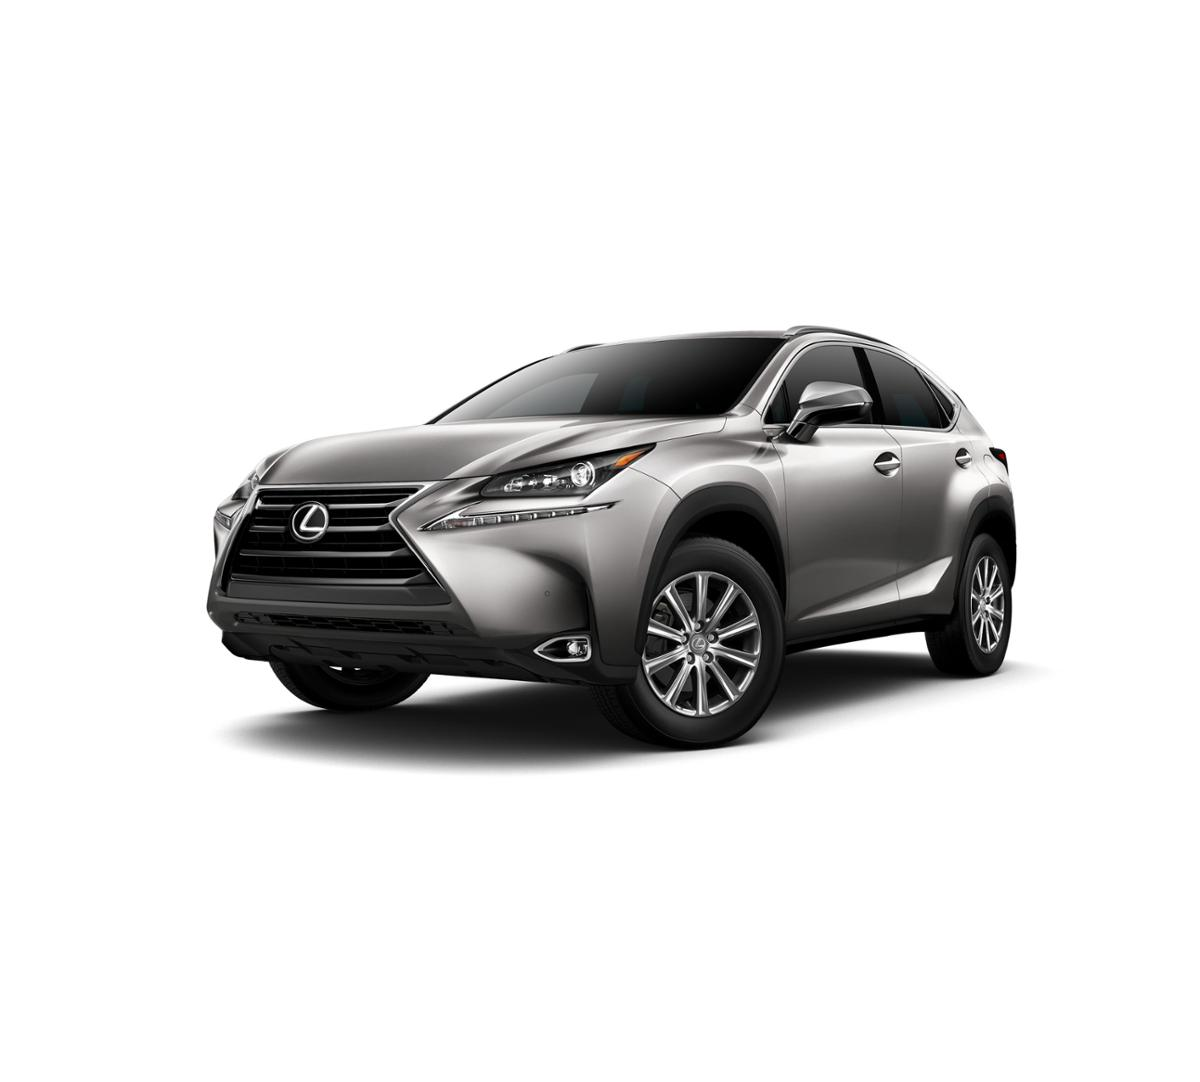 2017 Lexus NX Turbo Vehicle Photo in Danvers, MA 01923